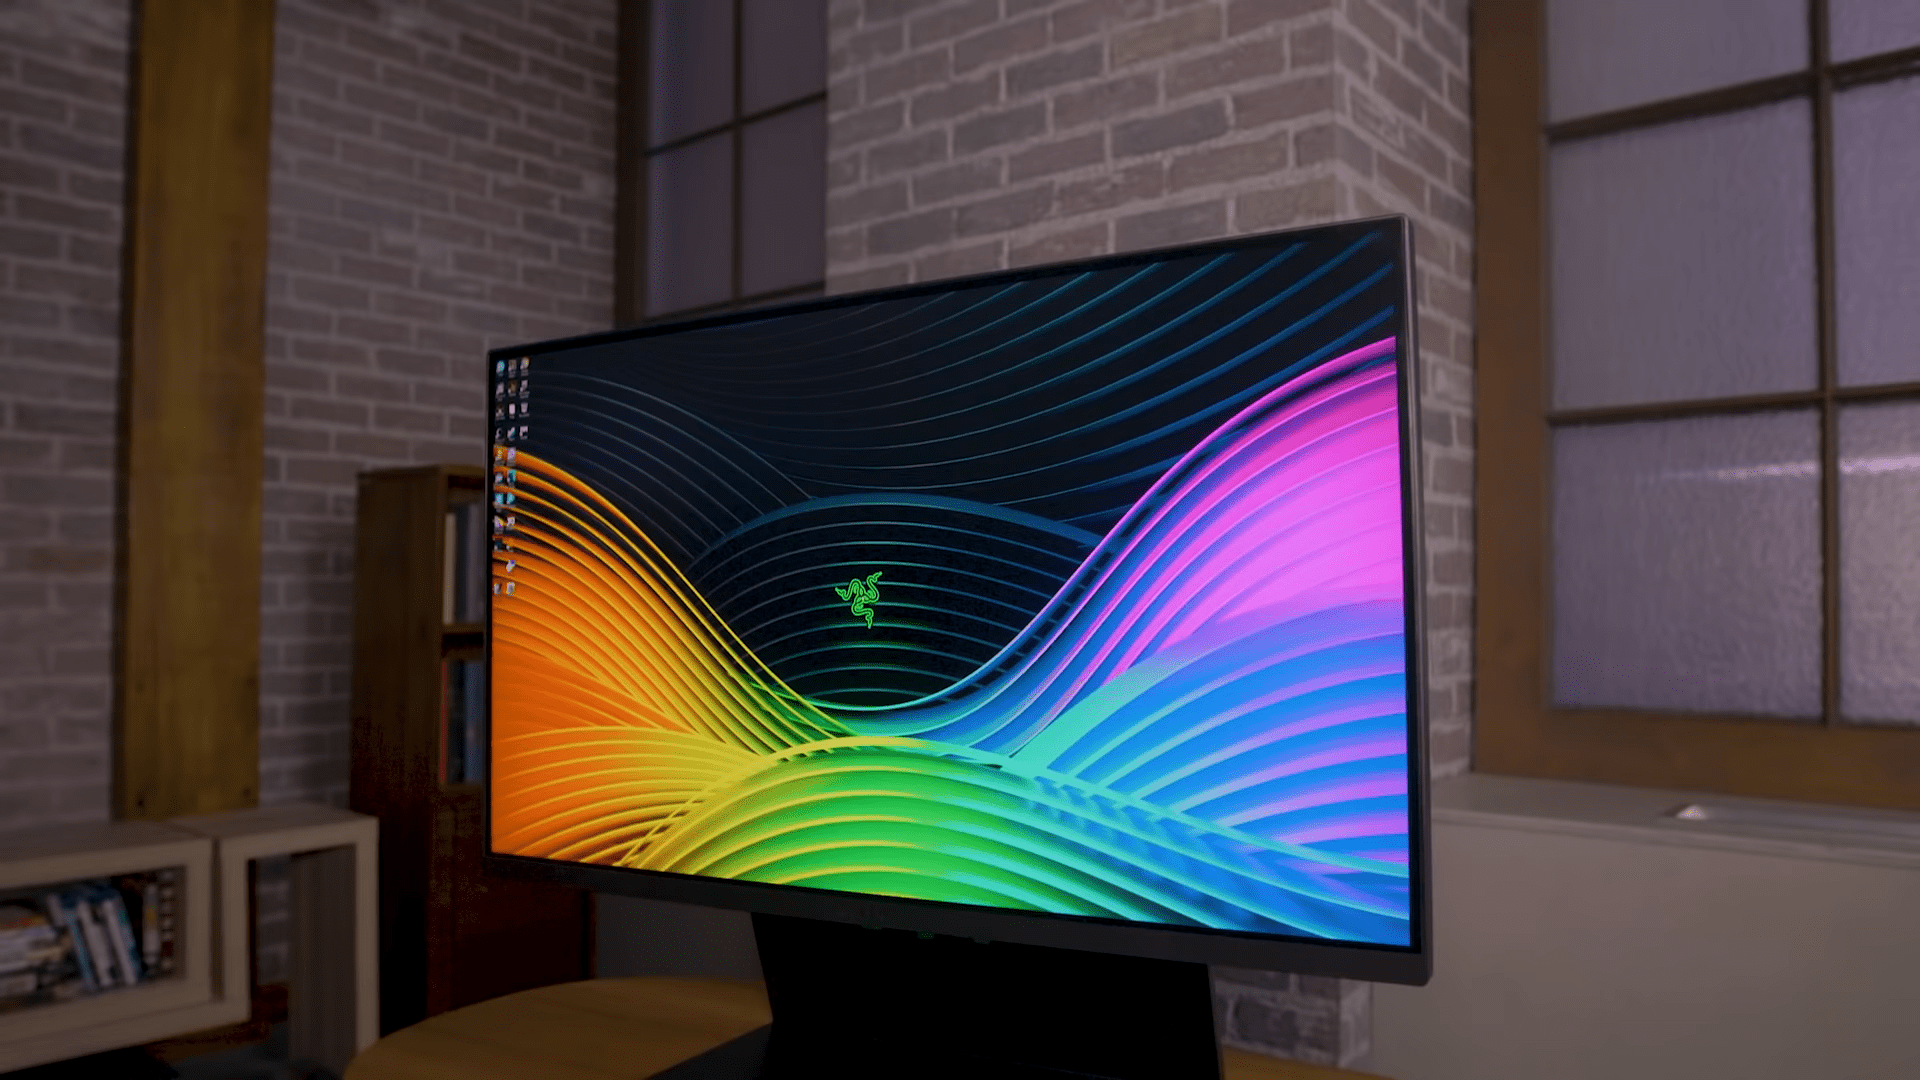 Razer Unleashes The New Razer Raptor 27 Gaming Monitor, It Features 144Hz Refresh Rate And Is AMD FreeSync Compatible